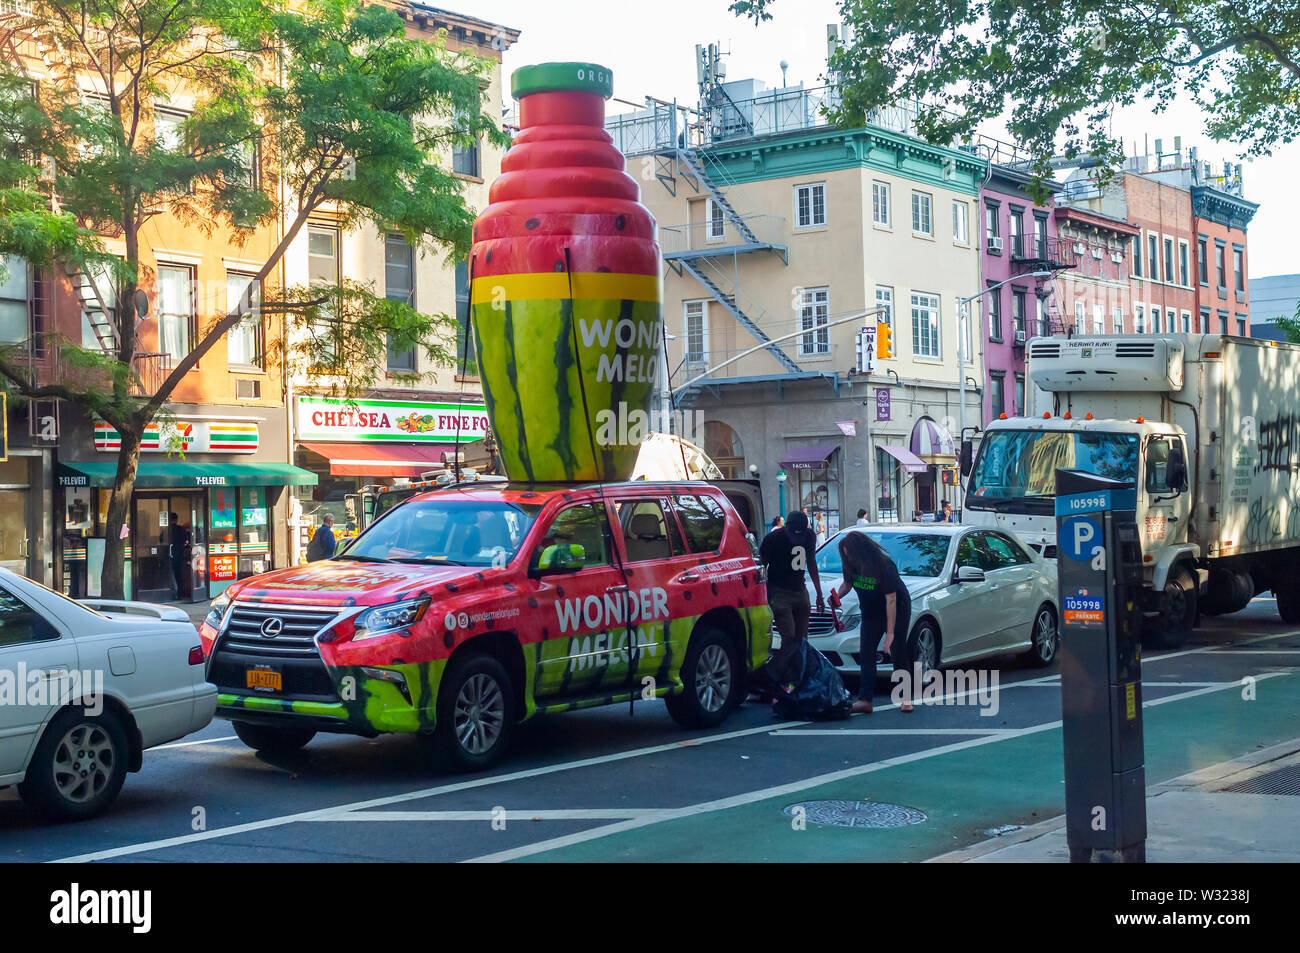 A vehicle in a promotional event for Wonder Melon, watermelon juice, in the Chelsea neighborhood of New York on Tuesday, July 9, 2019.  (© Richard B. Levine) - Stock Image